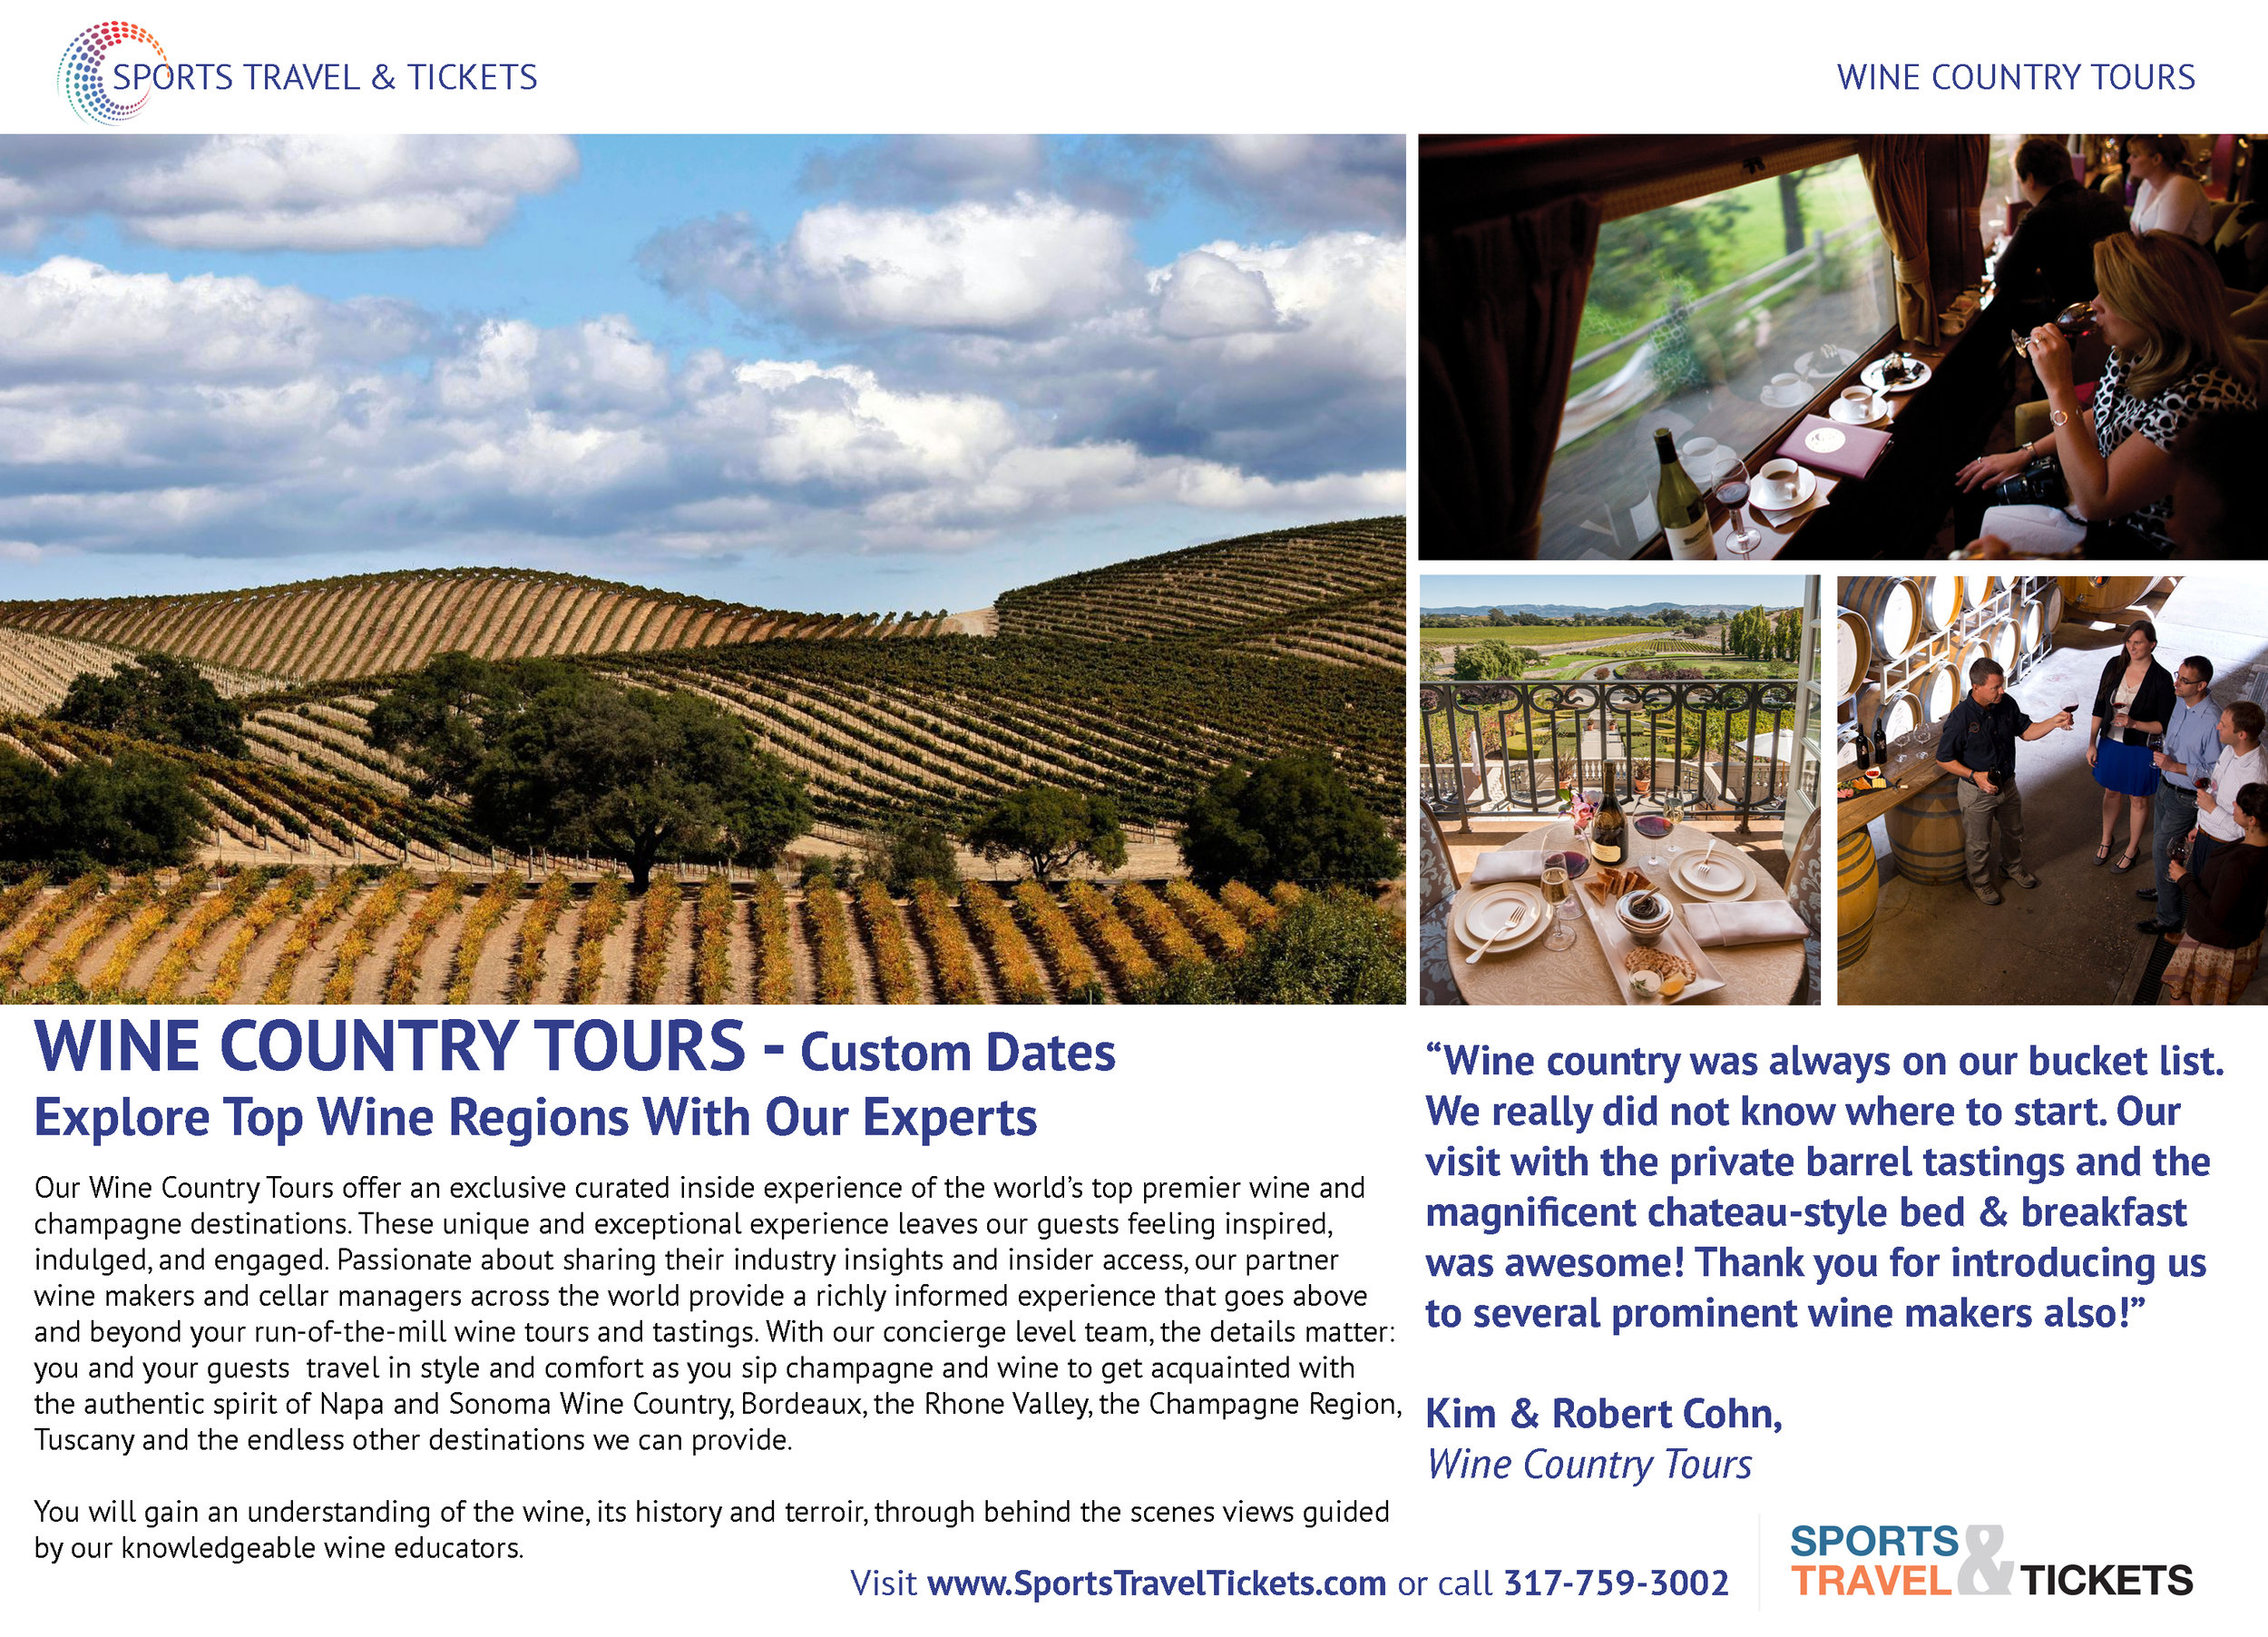 Sports Travel & Tickets Brochure Wine Country travel experiences wine workshops.jpg